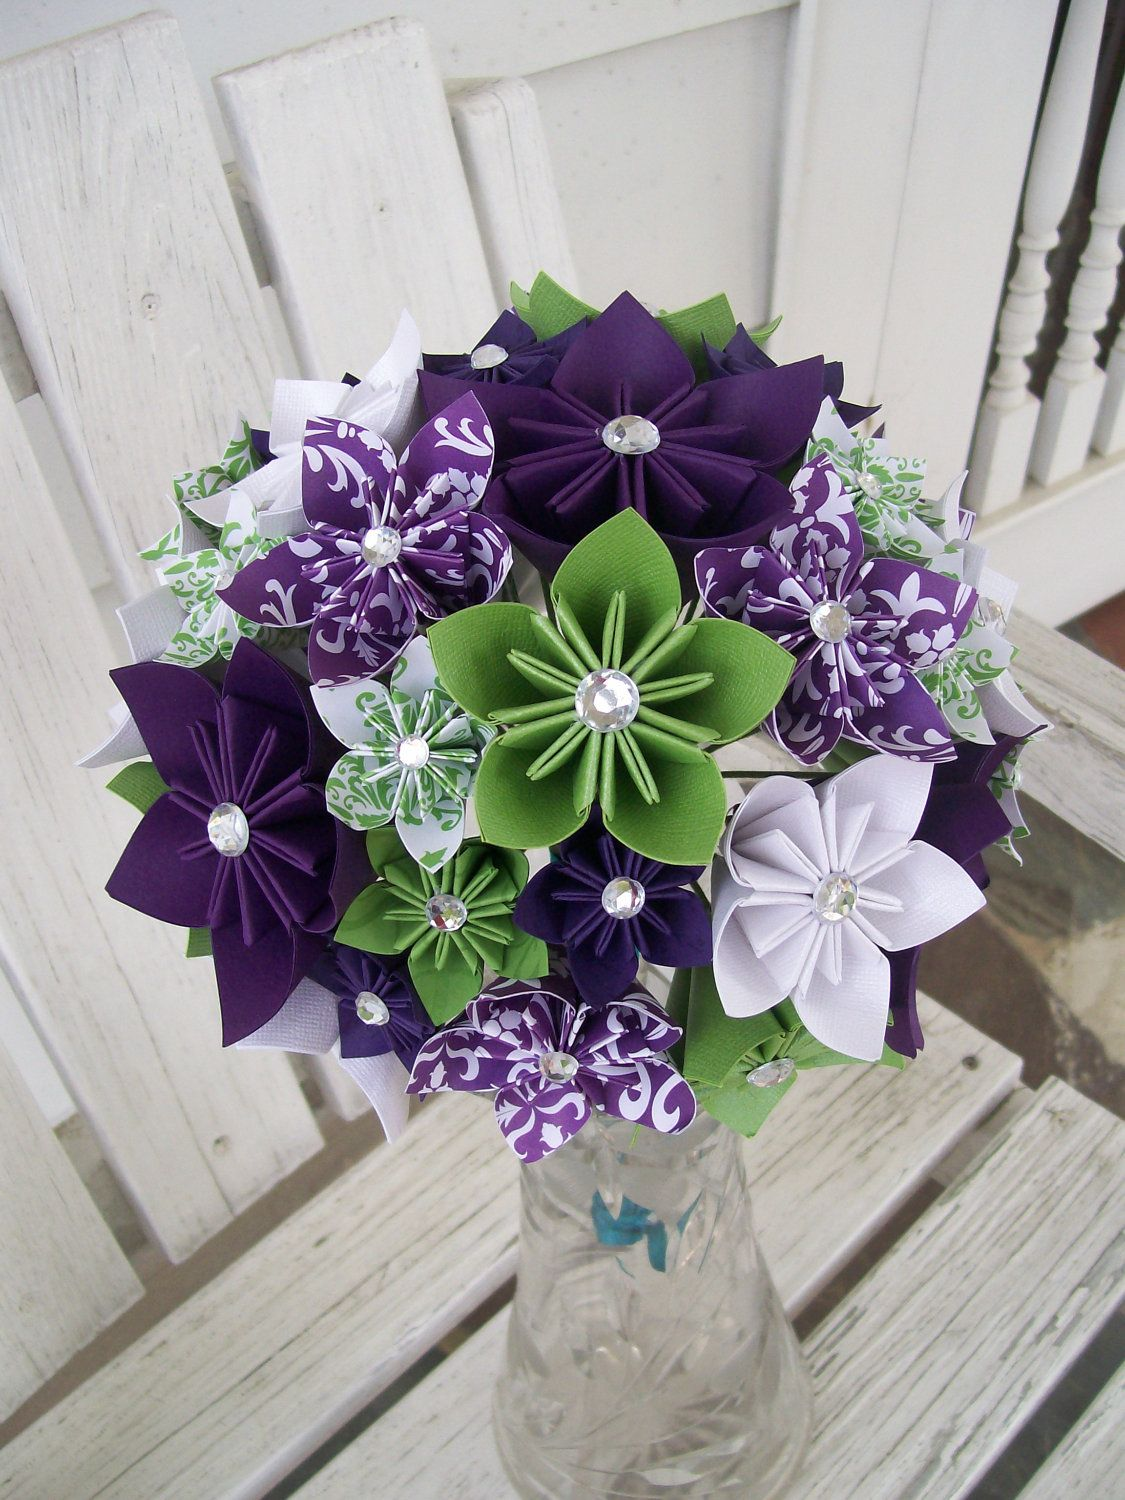 Custom Paper Flower Bridal Bouquet and Boutonniere. 160